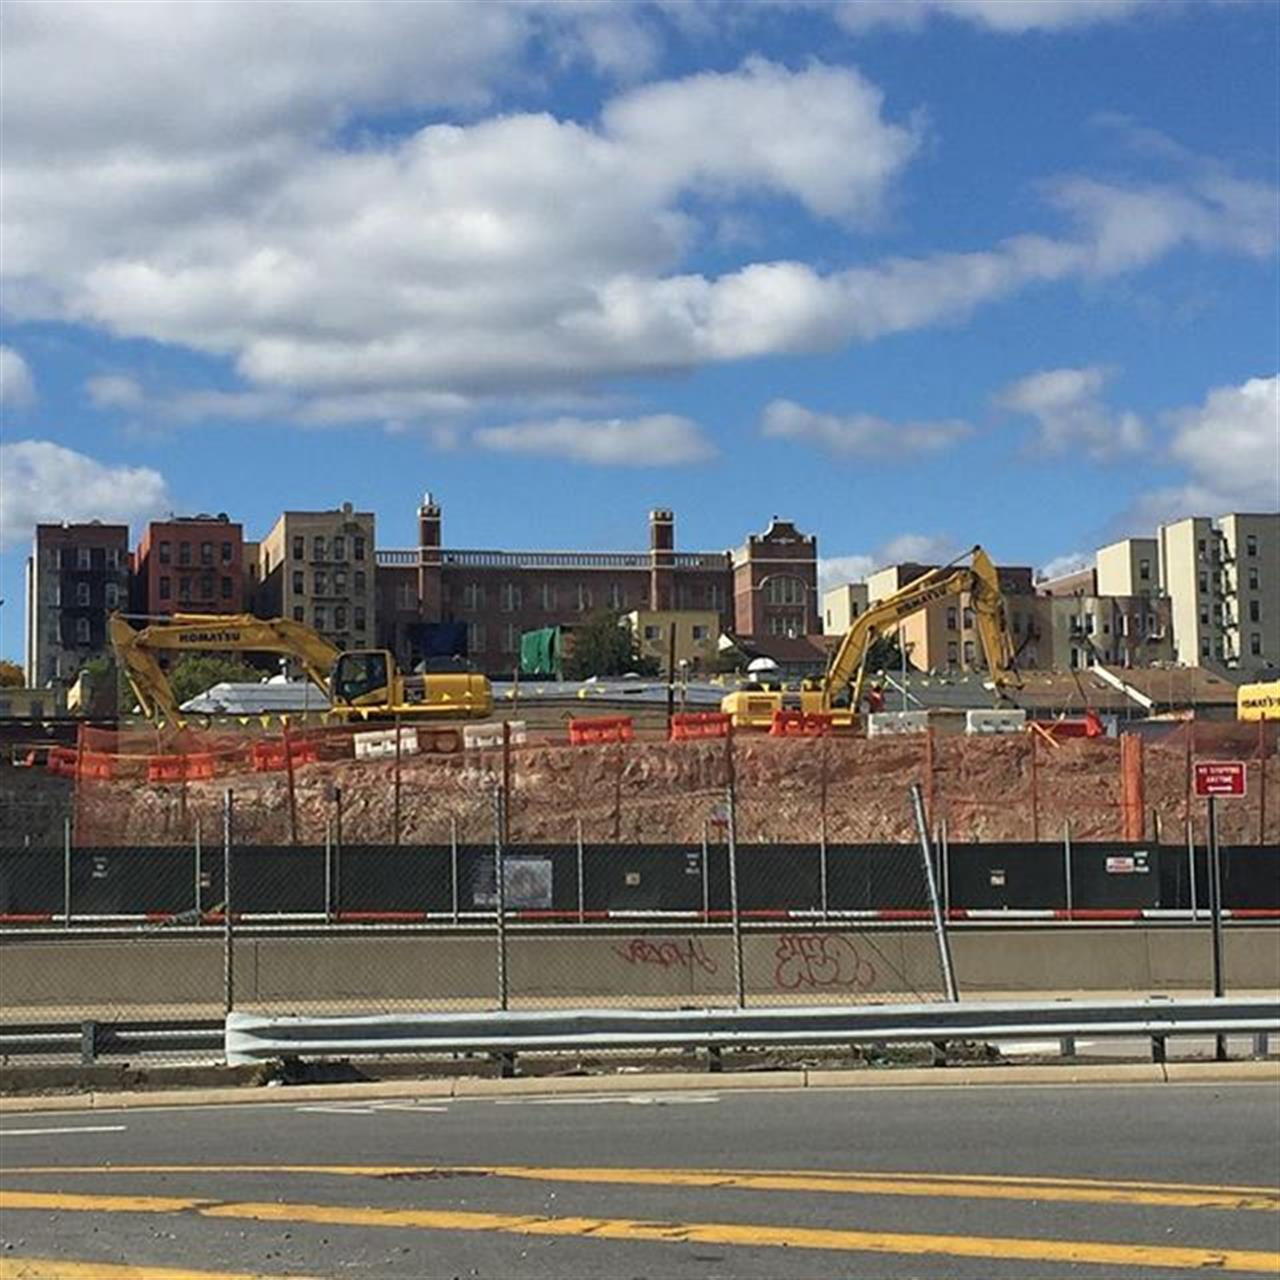 #thebronxis #excavators #bobcat The continued growth of the #bronx county is starting to take shape. Time is ticking on those #investors looking to enter a new #market  #OSCARRIGAMONTY #OR  #Bronx #RealEstate #trulia #realtor #zillow #homes #property #westchesterave #bruckner #bronx #newyorkcity #NYC #bronxdoesitbest #eyesonthebronx #pantigagroup #leadingre #komatsu  Link in bio